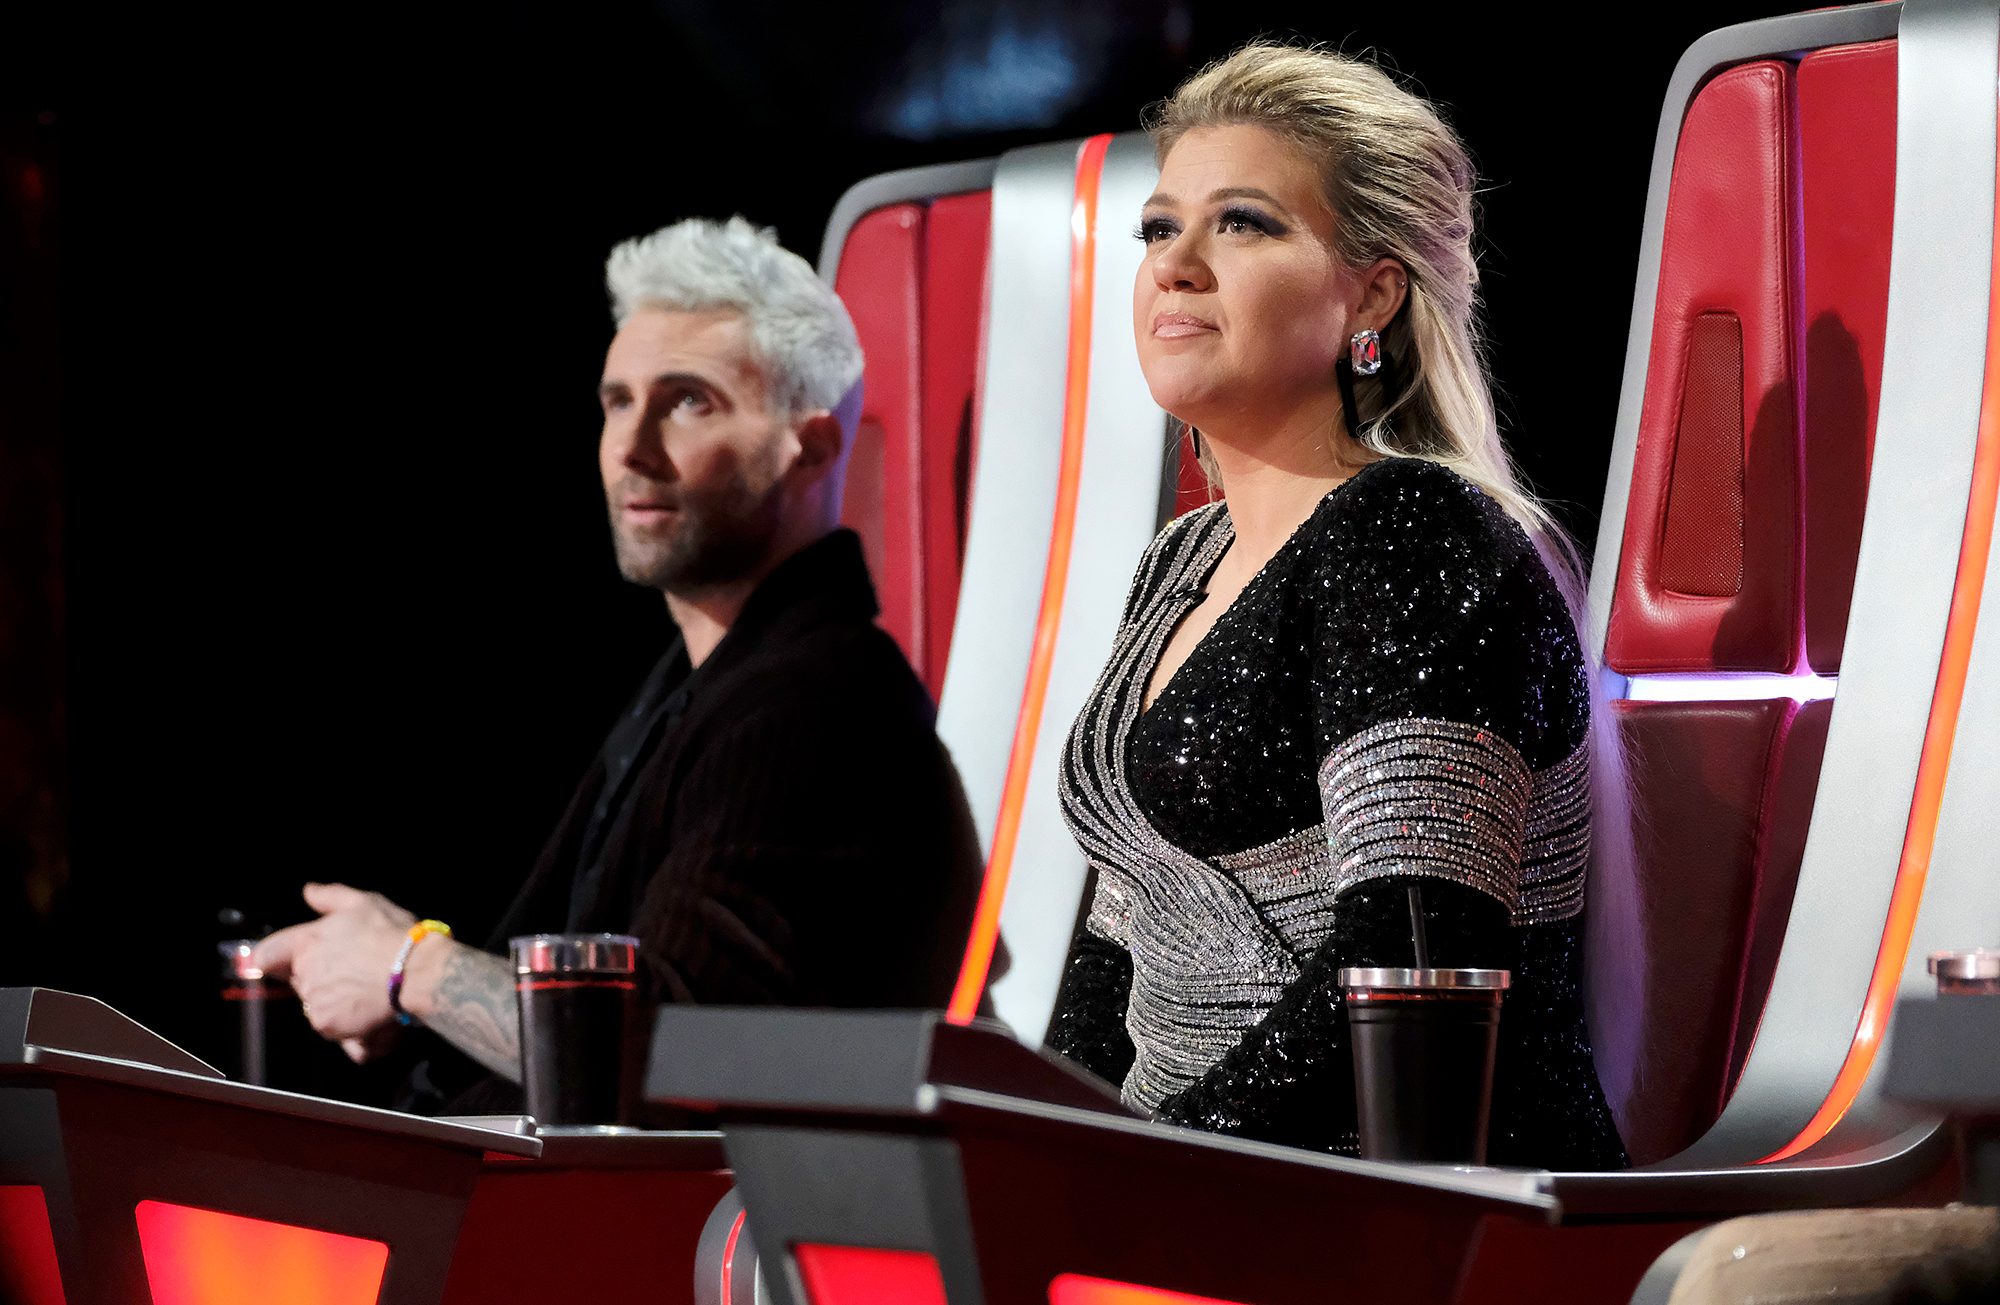 """Kelly-Clarkson-Adam-Levine - The American Idol season 1 winner, who joined The Voice as a coach in February 2018 , admitted that it will be strange to be on set without Levine. She wrote on Twitter: """"Found out last night about @adamlevine leaving The Voice & while I get that he's been doing the show 4 a while & wants to step away, it will be weird showing up 4 work & he's not there To start an amazing show from the ground up is a big deal!"""""""